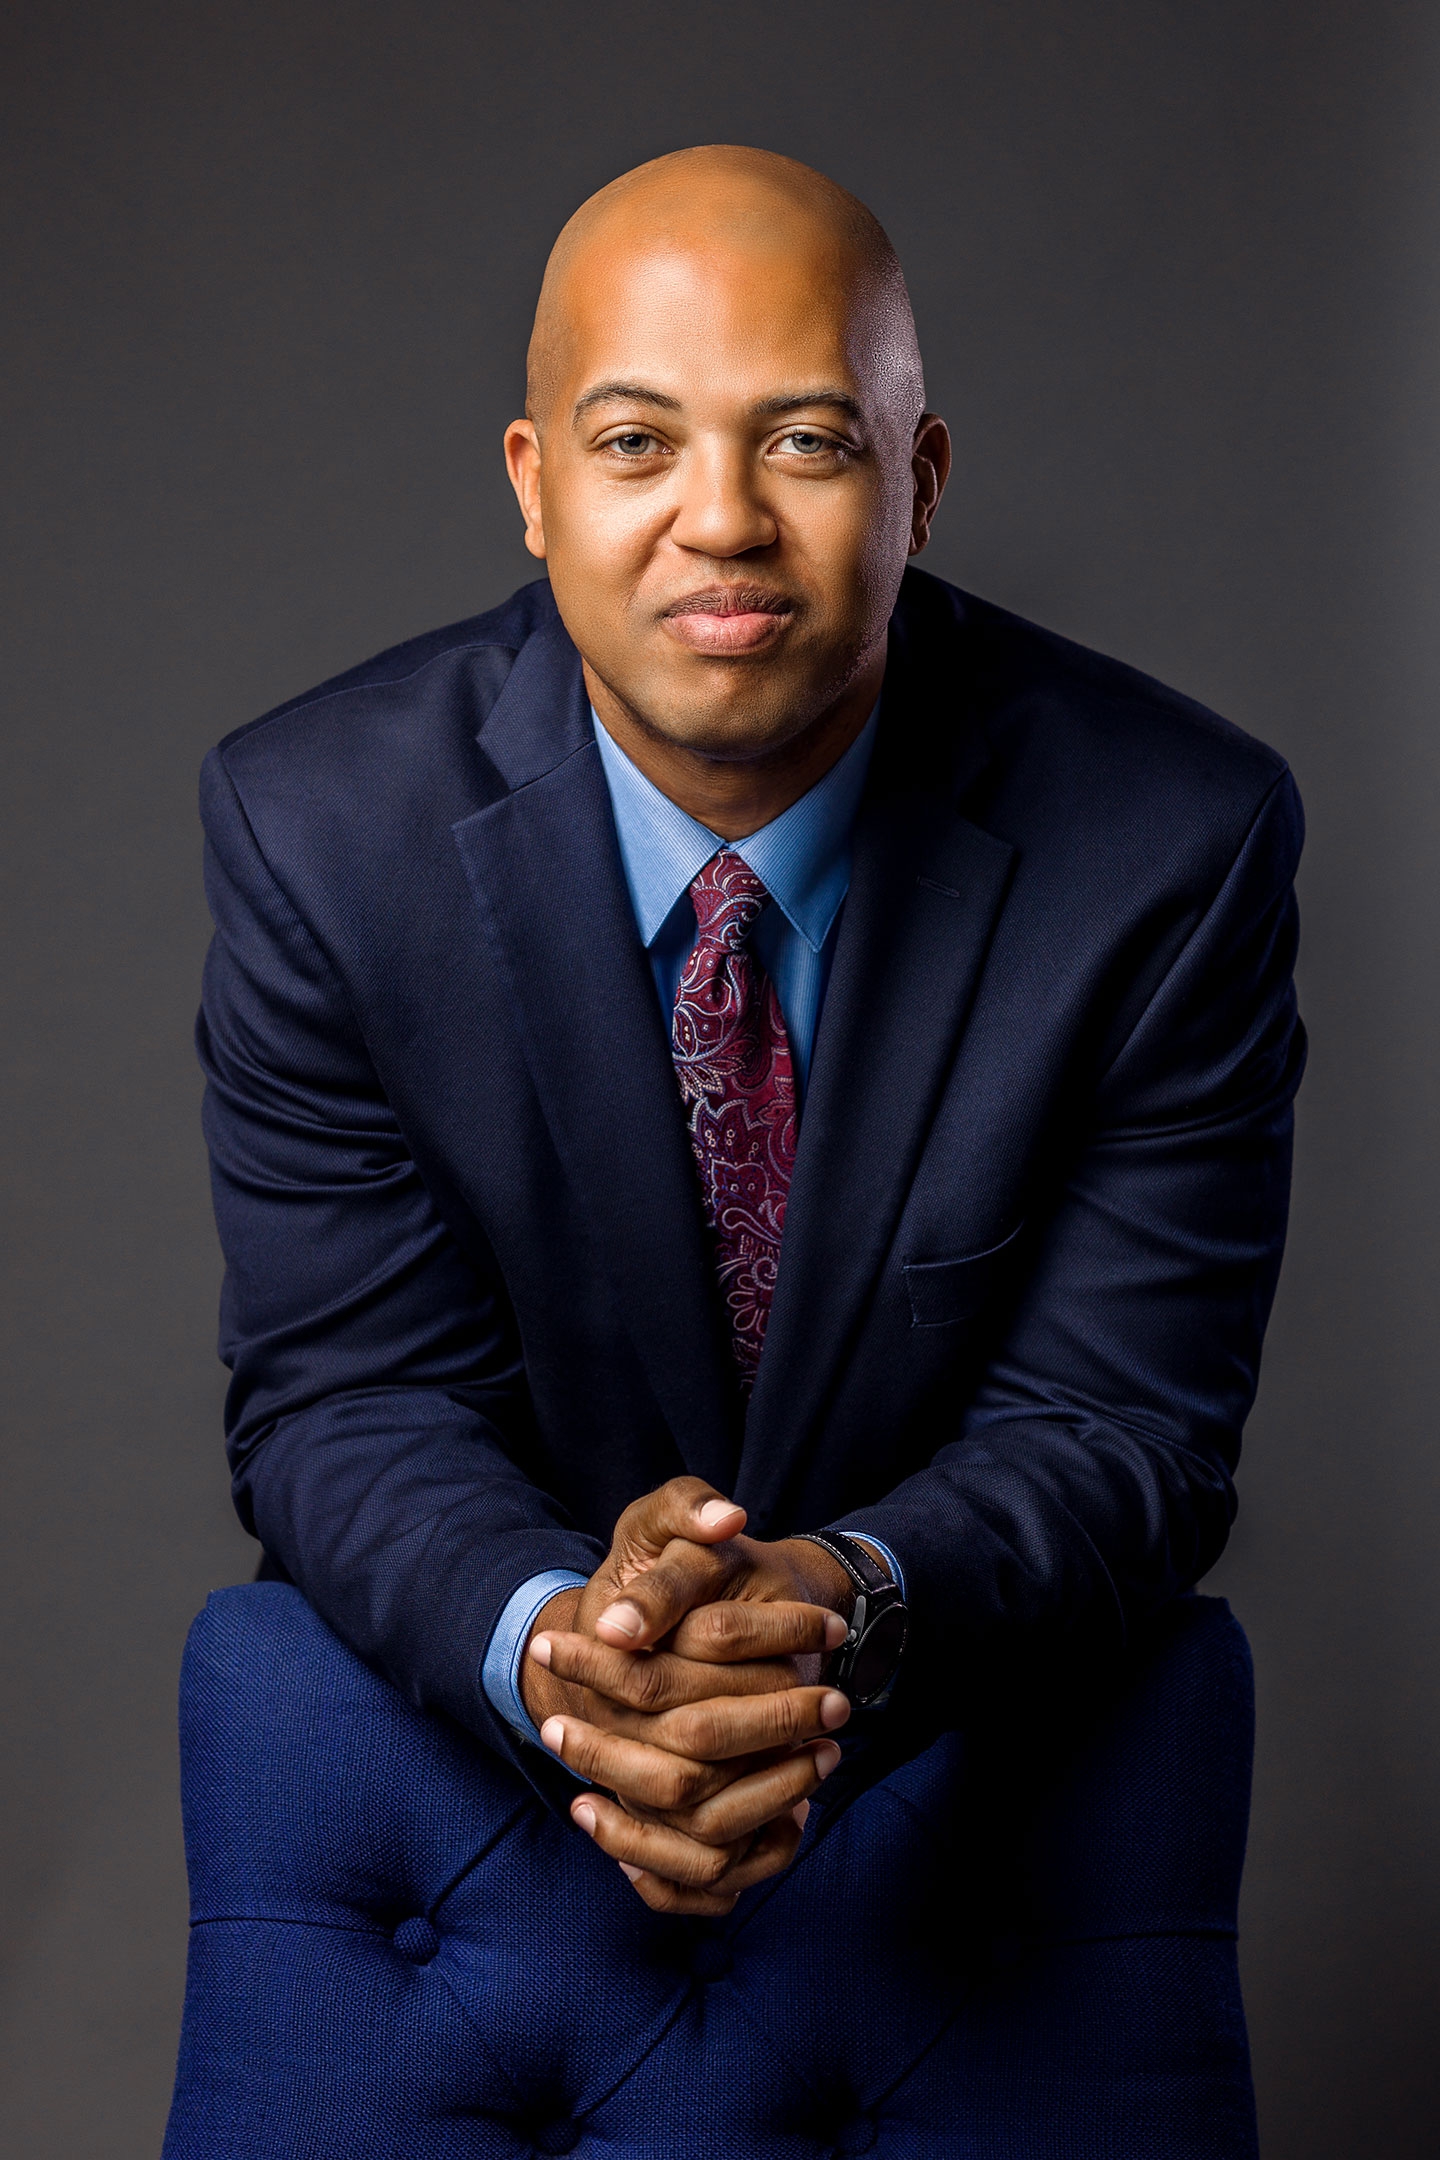 Business Headshot of an African American man in a blue suit